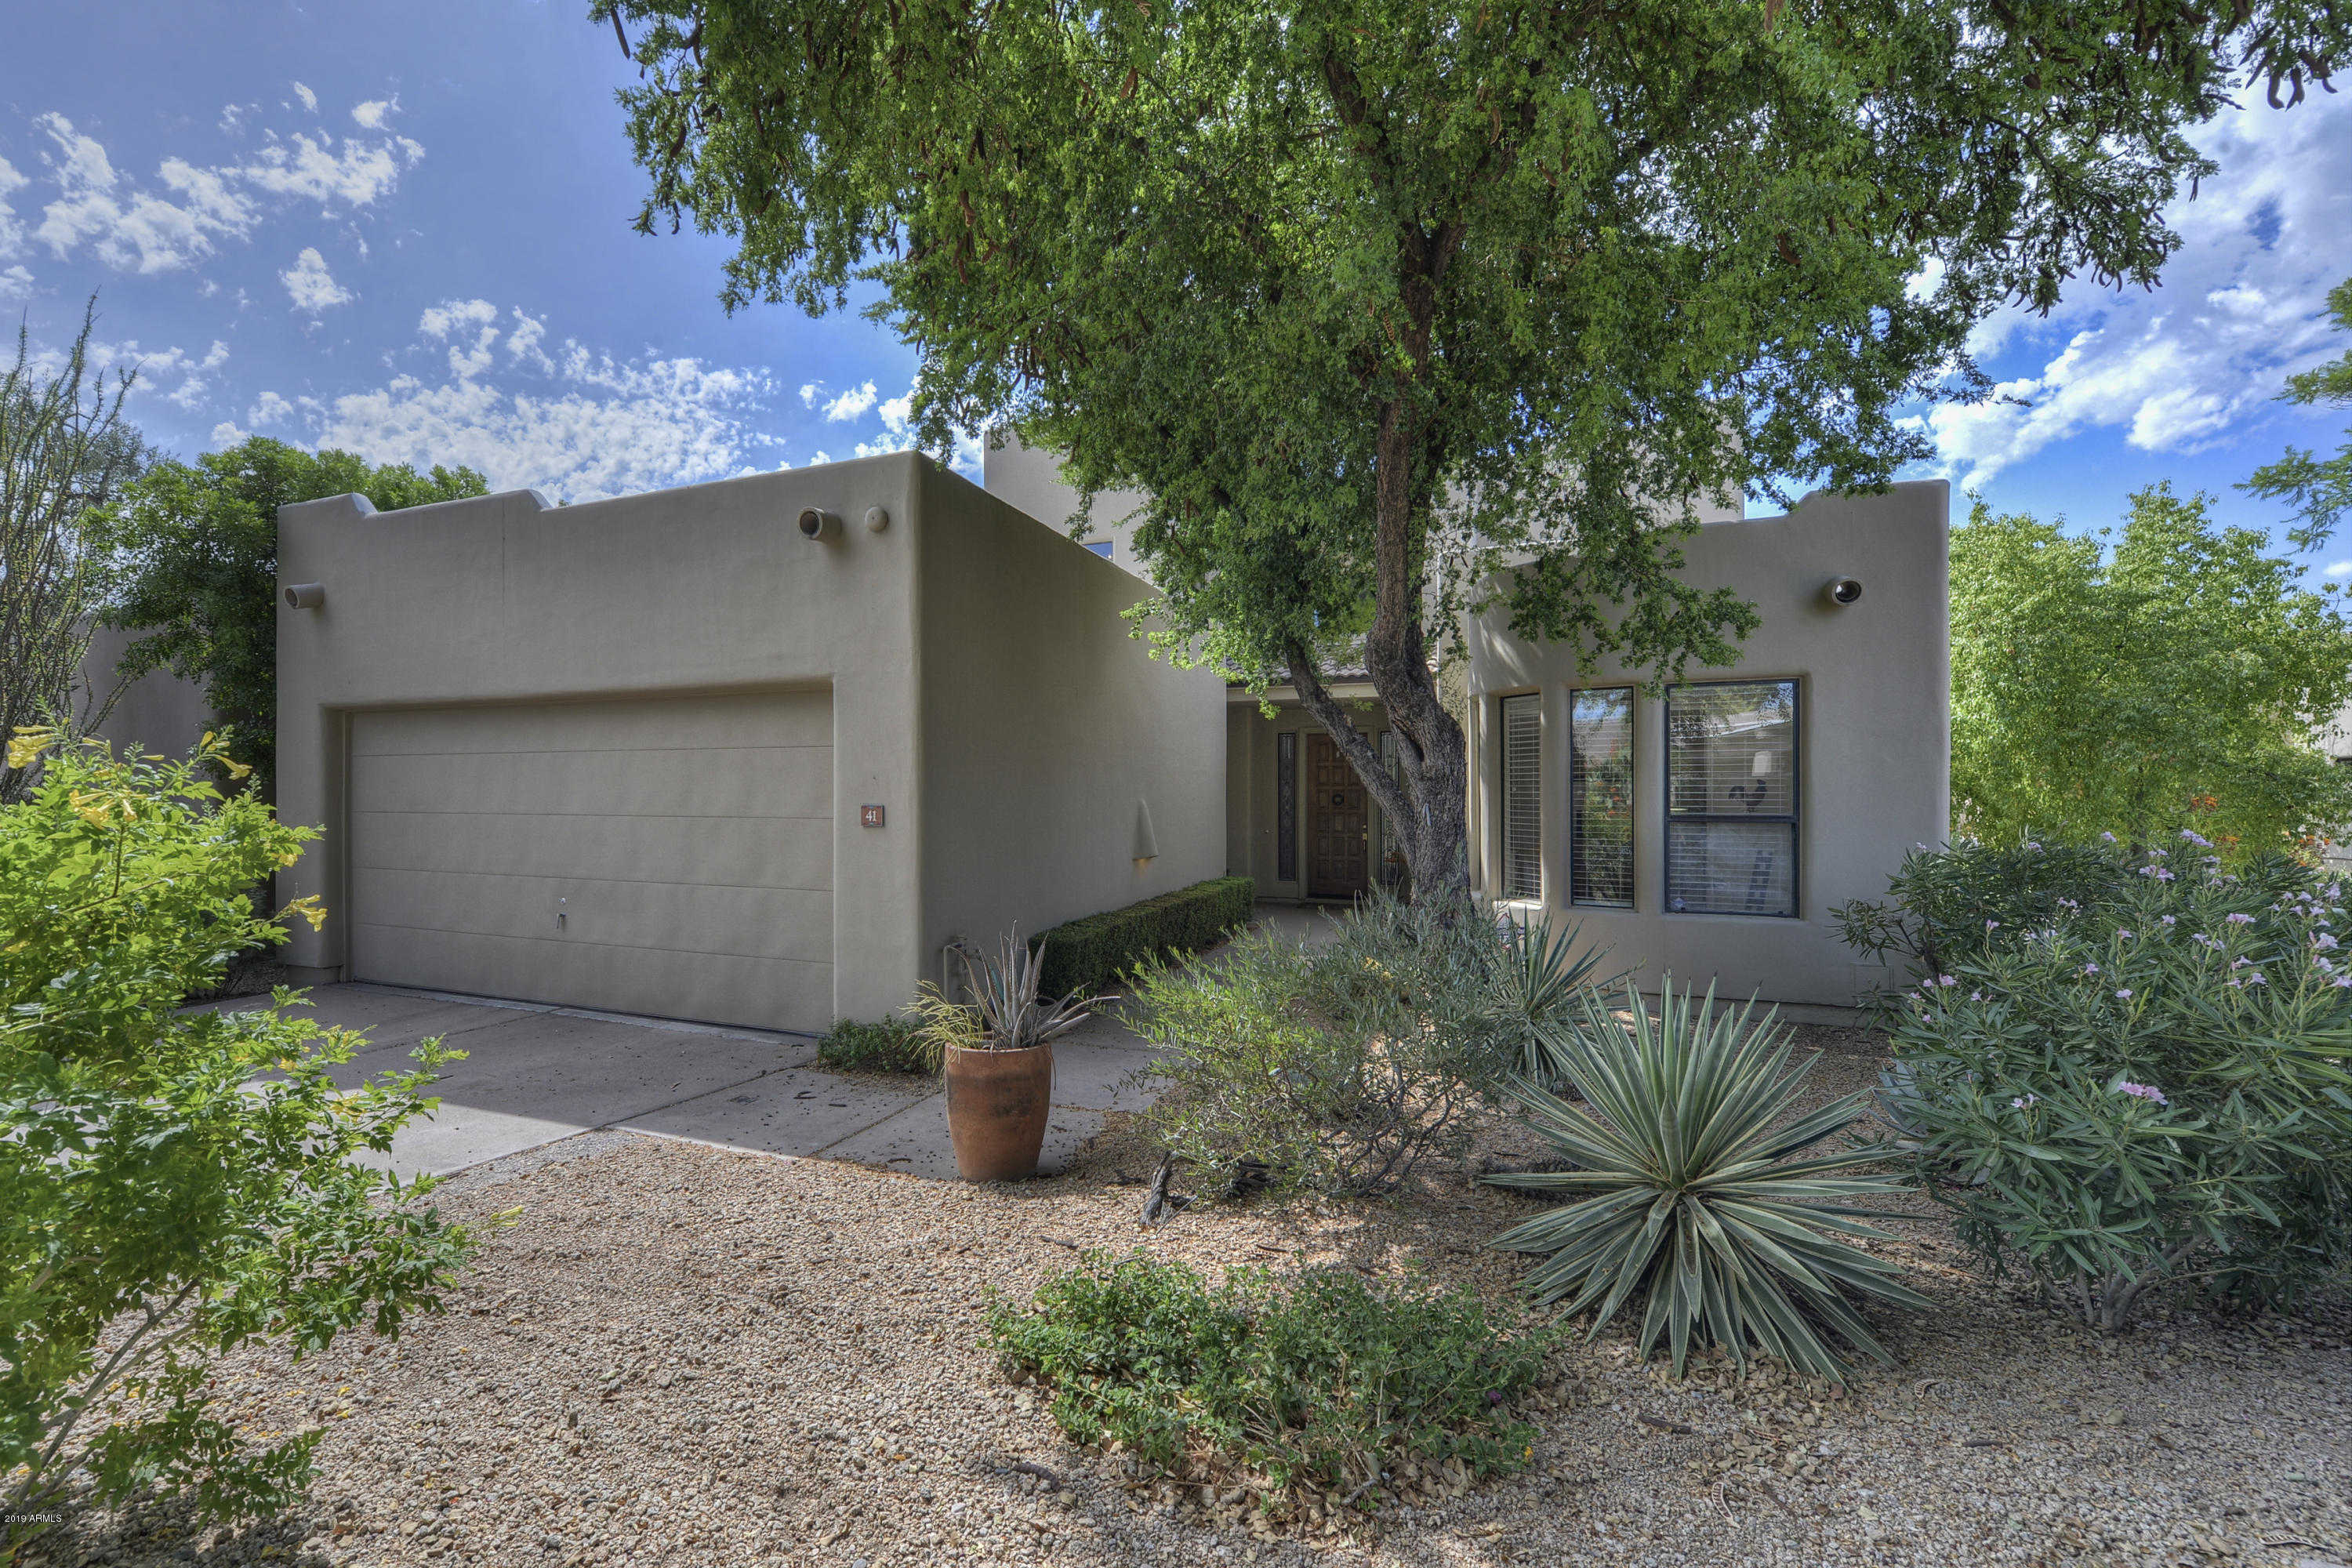 $895,000 - 3Br/3Ba -  for Sale in Pavoreal, Scottsdale